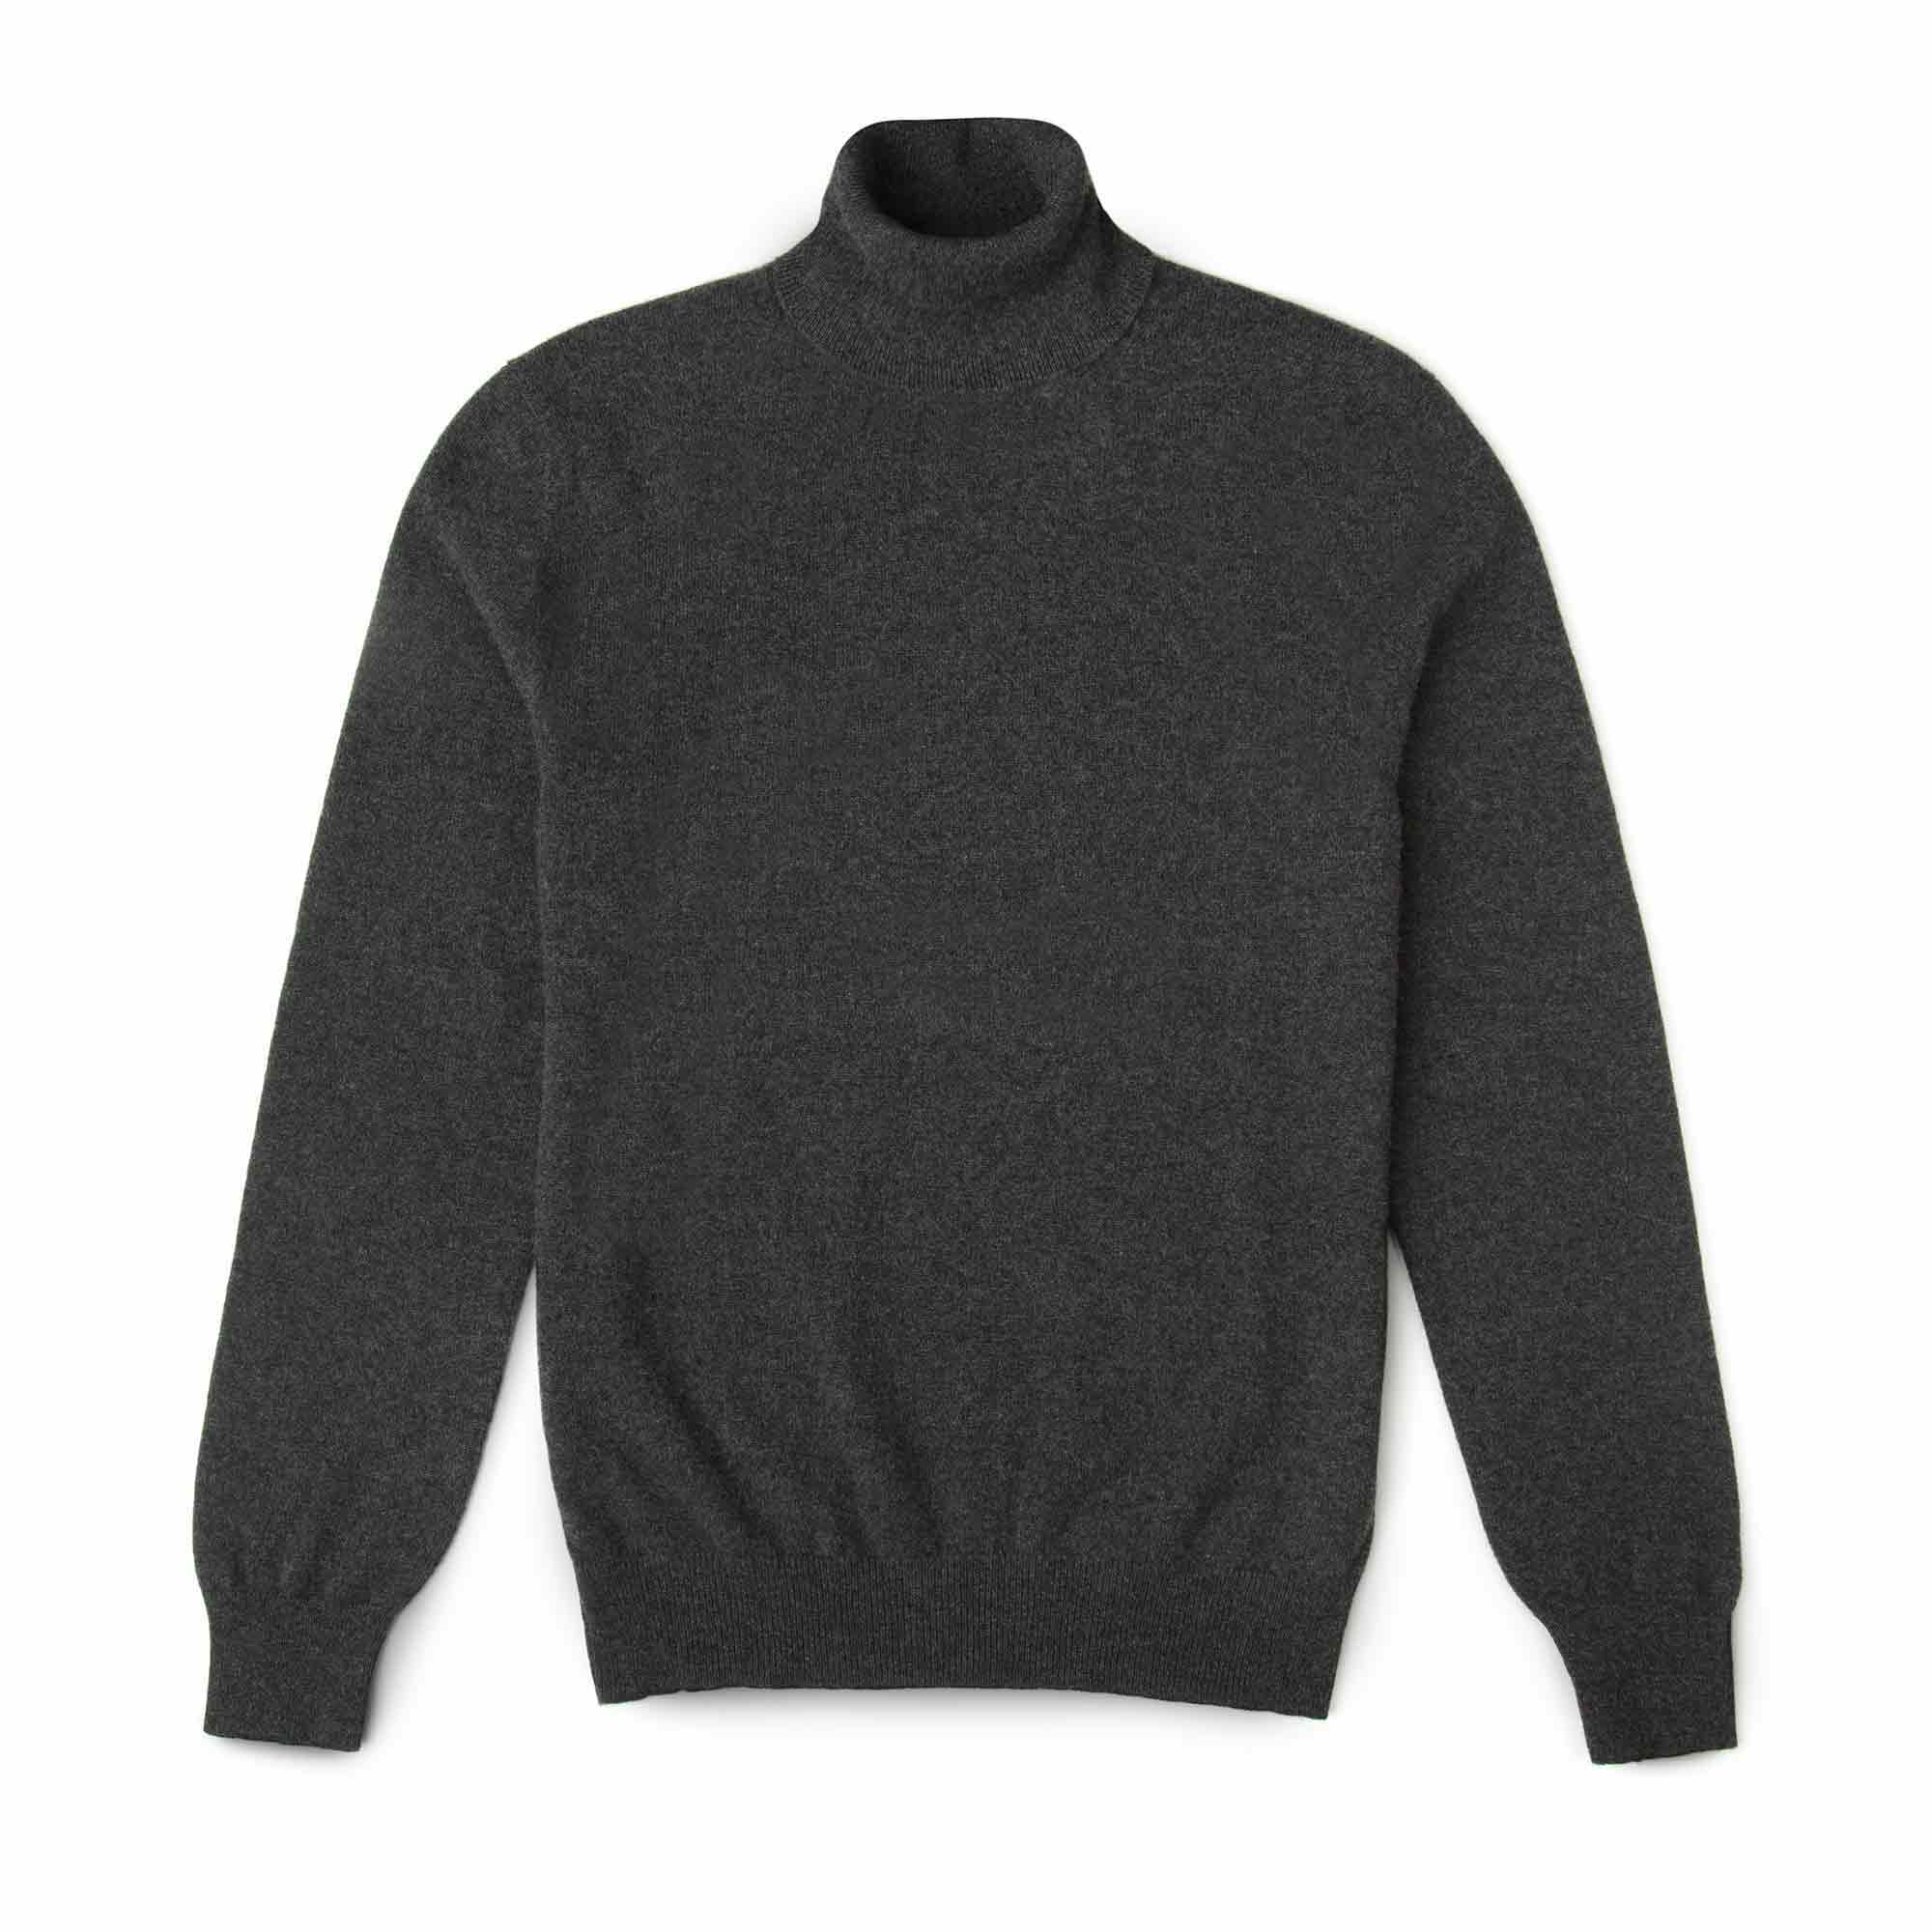 Luca Faloni Charcoal Grey Pure Cashmere Roll Neck Made in Italy